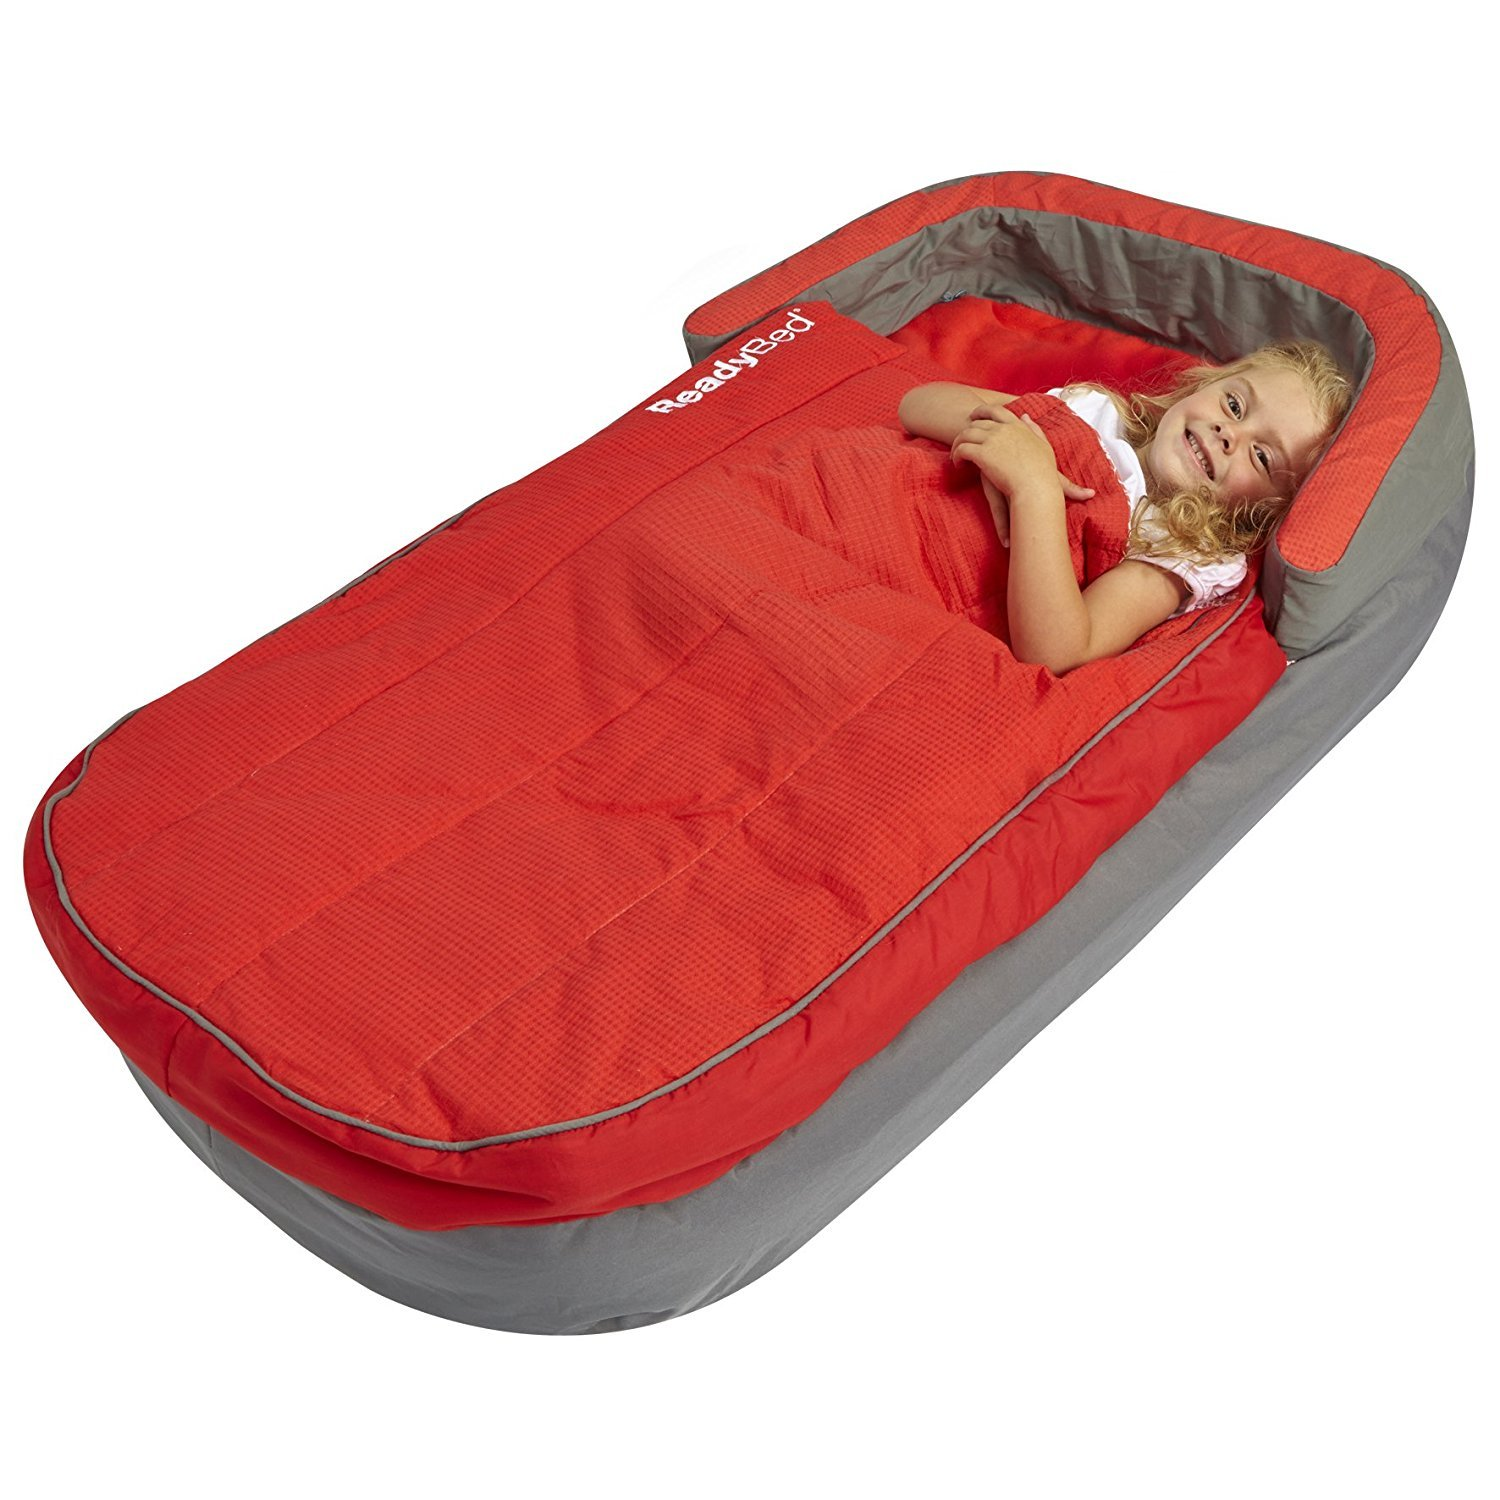 My First ReadyBed, Deluxe by Worlds Apart, Ages 18 months - 3 years by Readybed (Image #4)